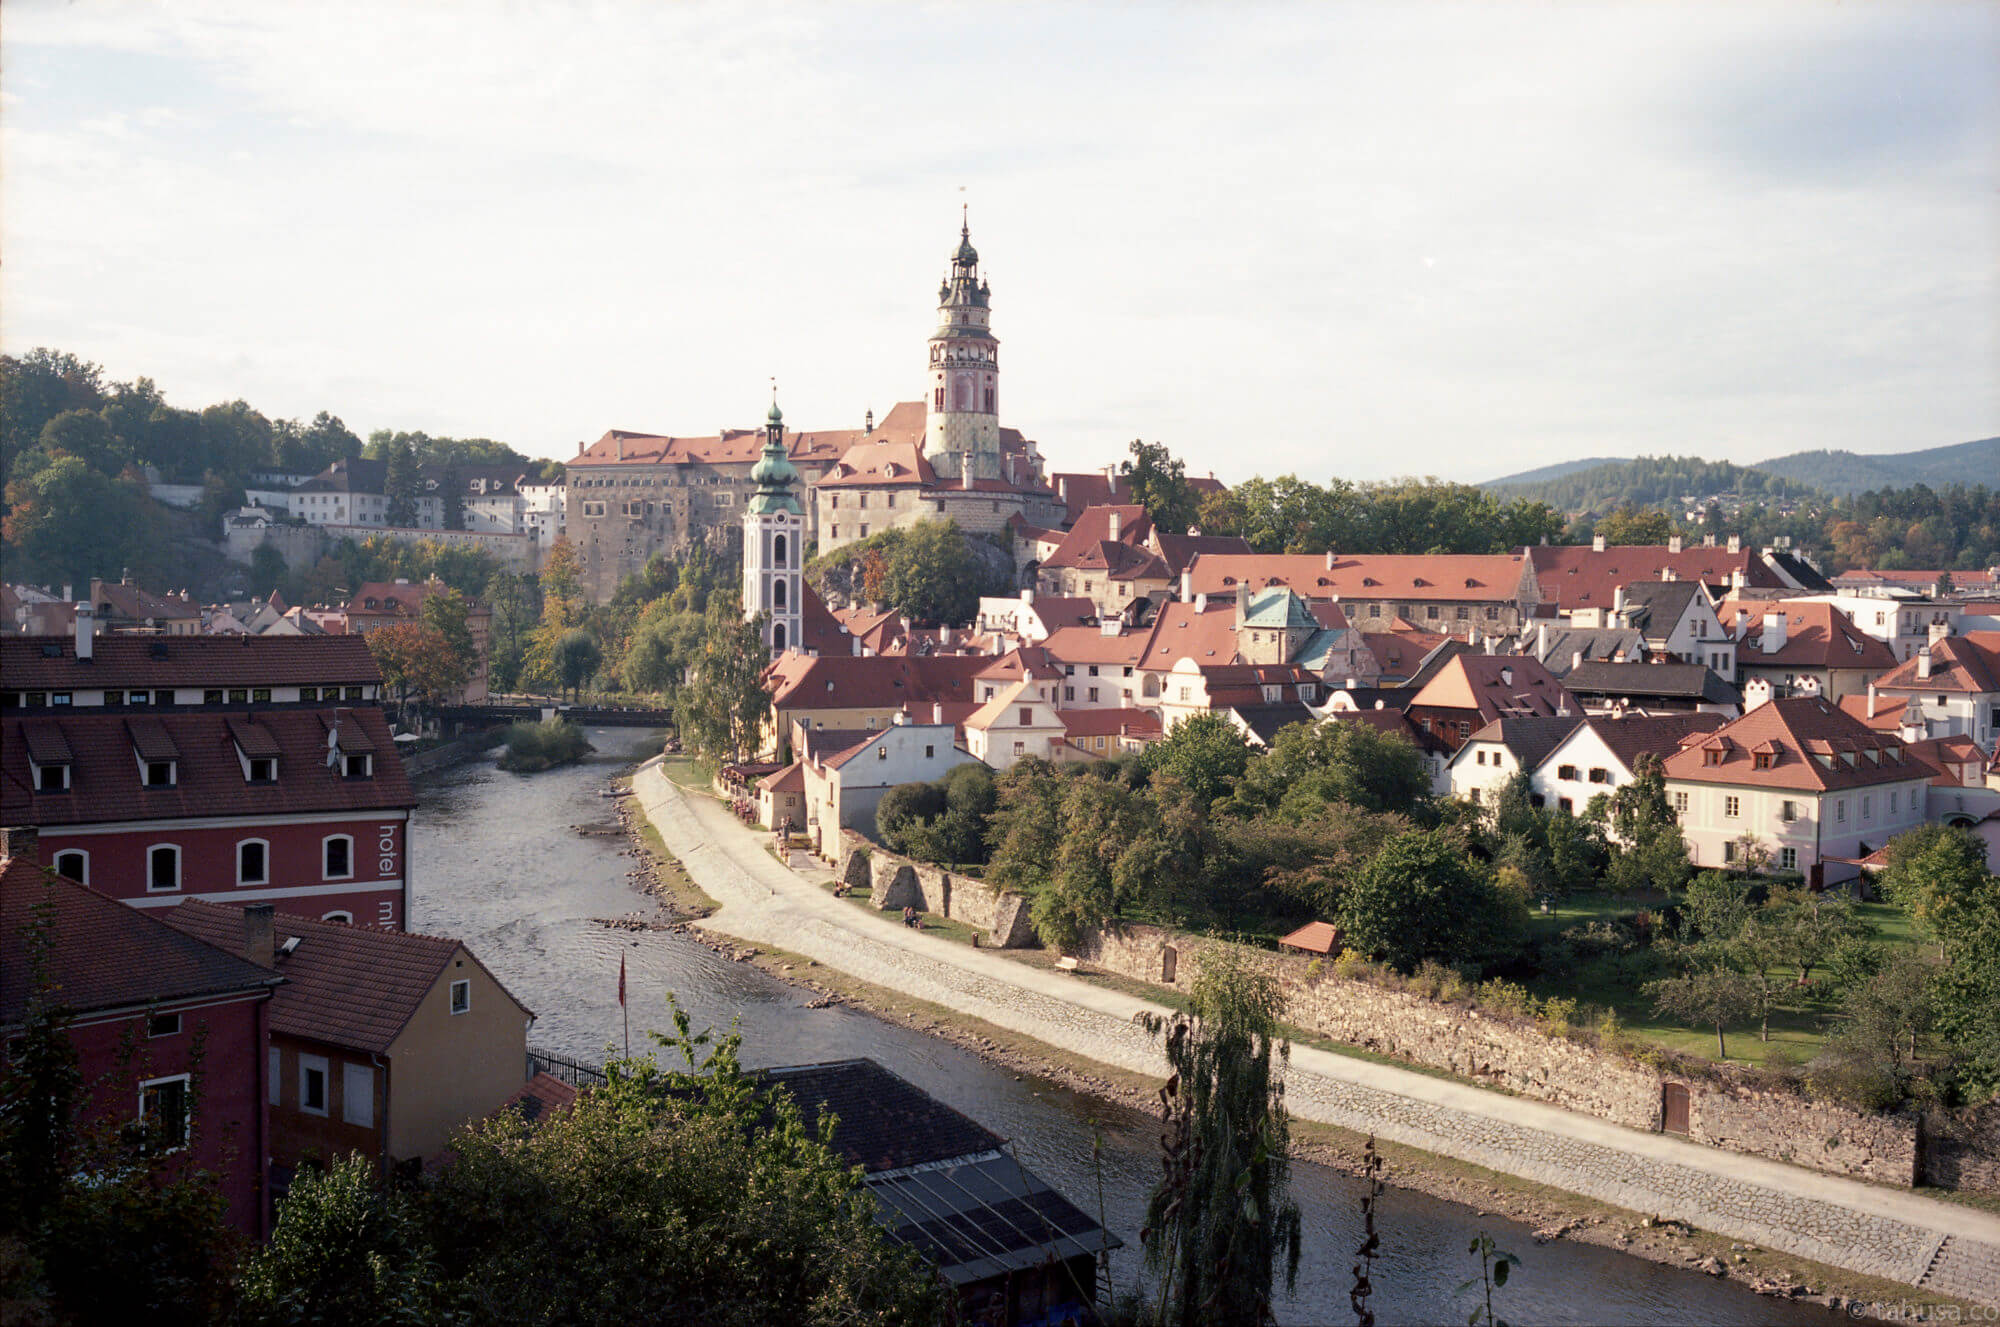 cesky-krumolv-small-town-in-czech-republic-word-most-beautiful-town-travel-photography-using-ektar-100-kodak-and-summicron-35mm-f2-8elements-v1-leica-film